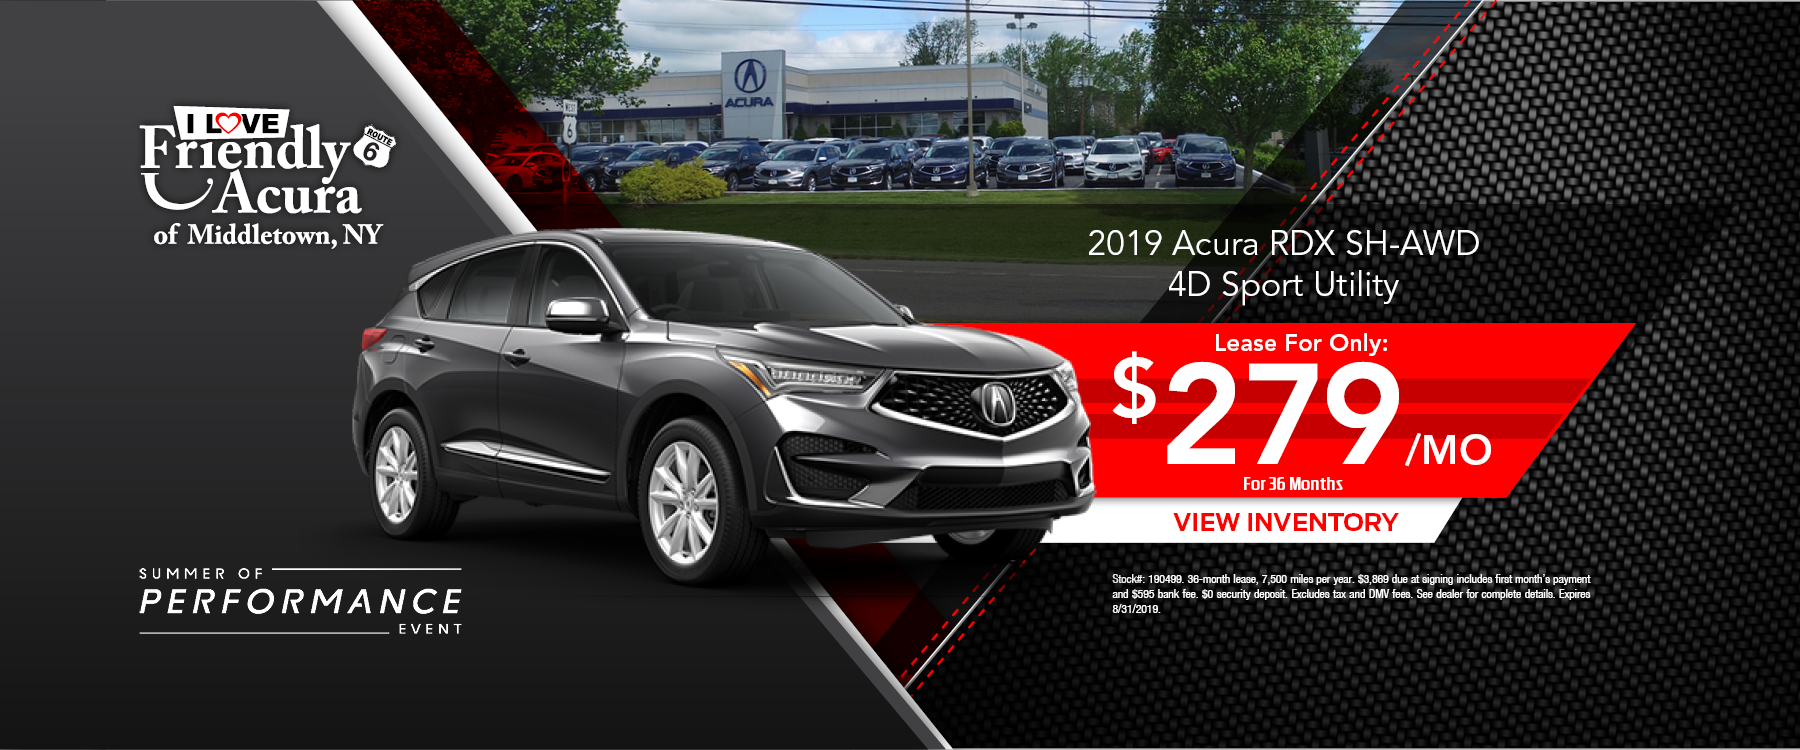 Acura Dealers Long Island >> Acura Dealer In Middletown Ny Friendly Acura Of Middletown